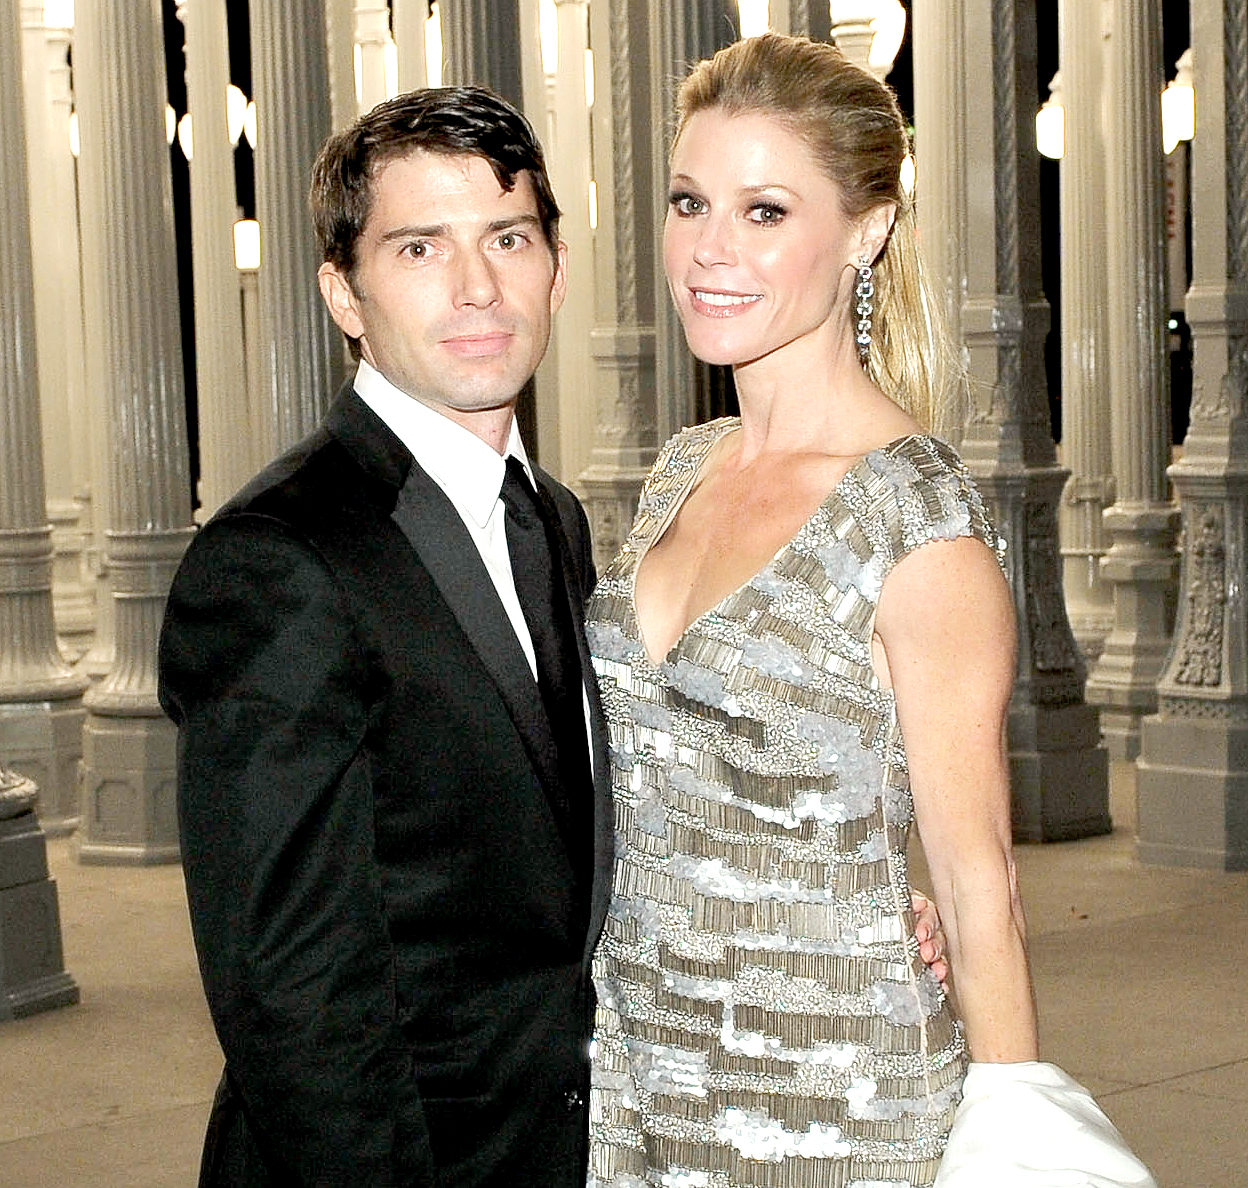 Julie Bowen and Scott Phillips attend the LACMA Art + Film Gala Honoring Clint Eastwood and John Baldessari, presented by Gucci, at the Los Angeles County Museum of Art on Nov. 5, 2011, in Los Angeles.